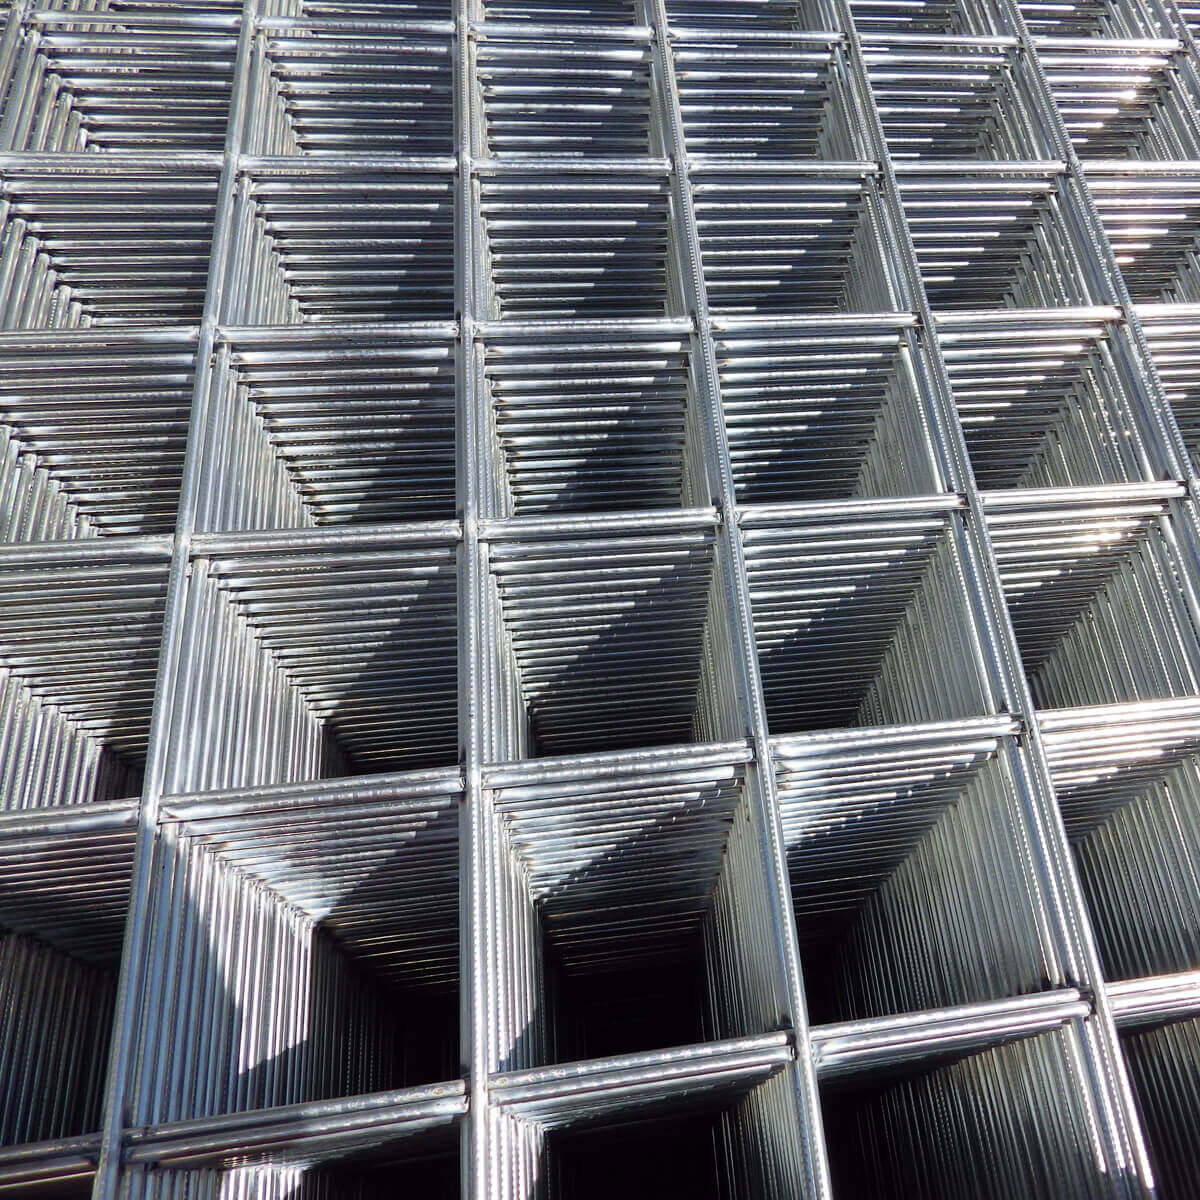 6-in x 6-in Grid Concrete Reinforcing Mesh Sheet - 4-ft x 7-ft